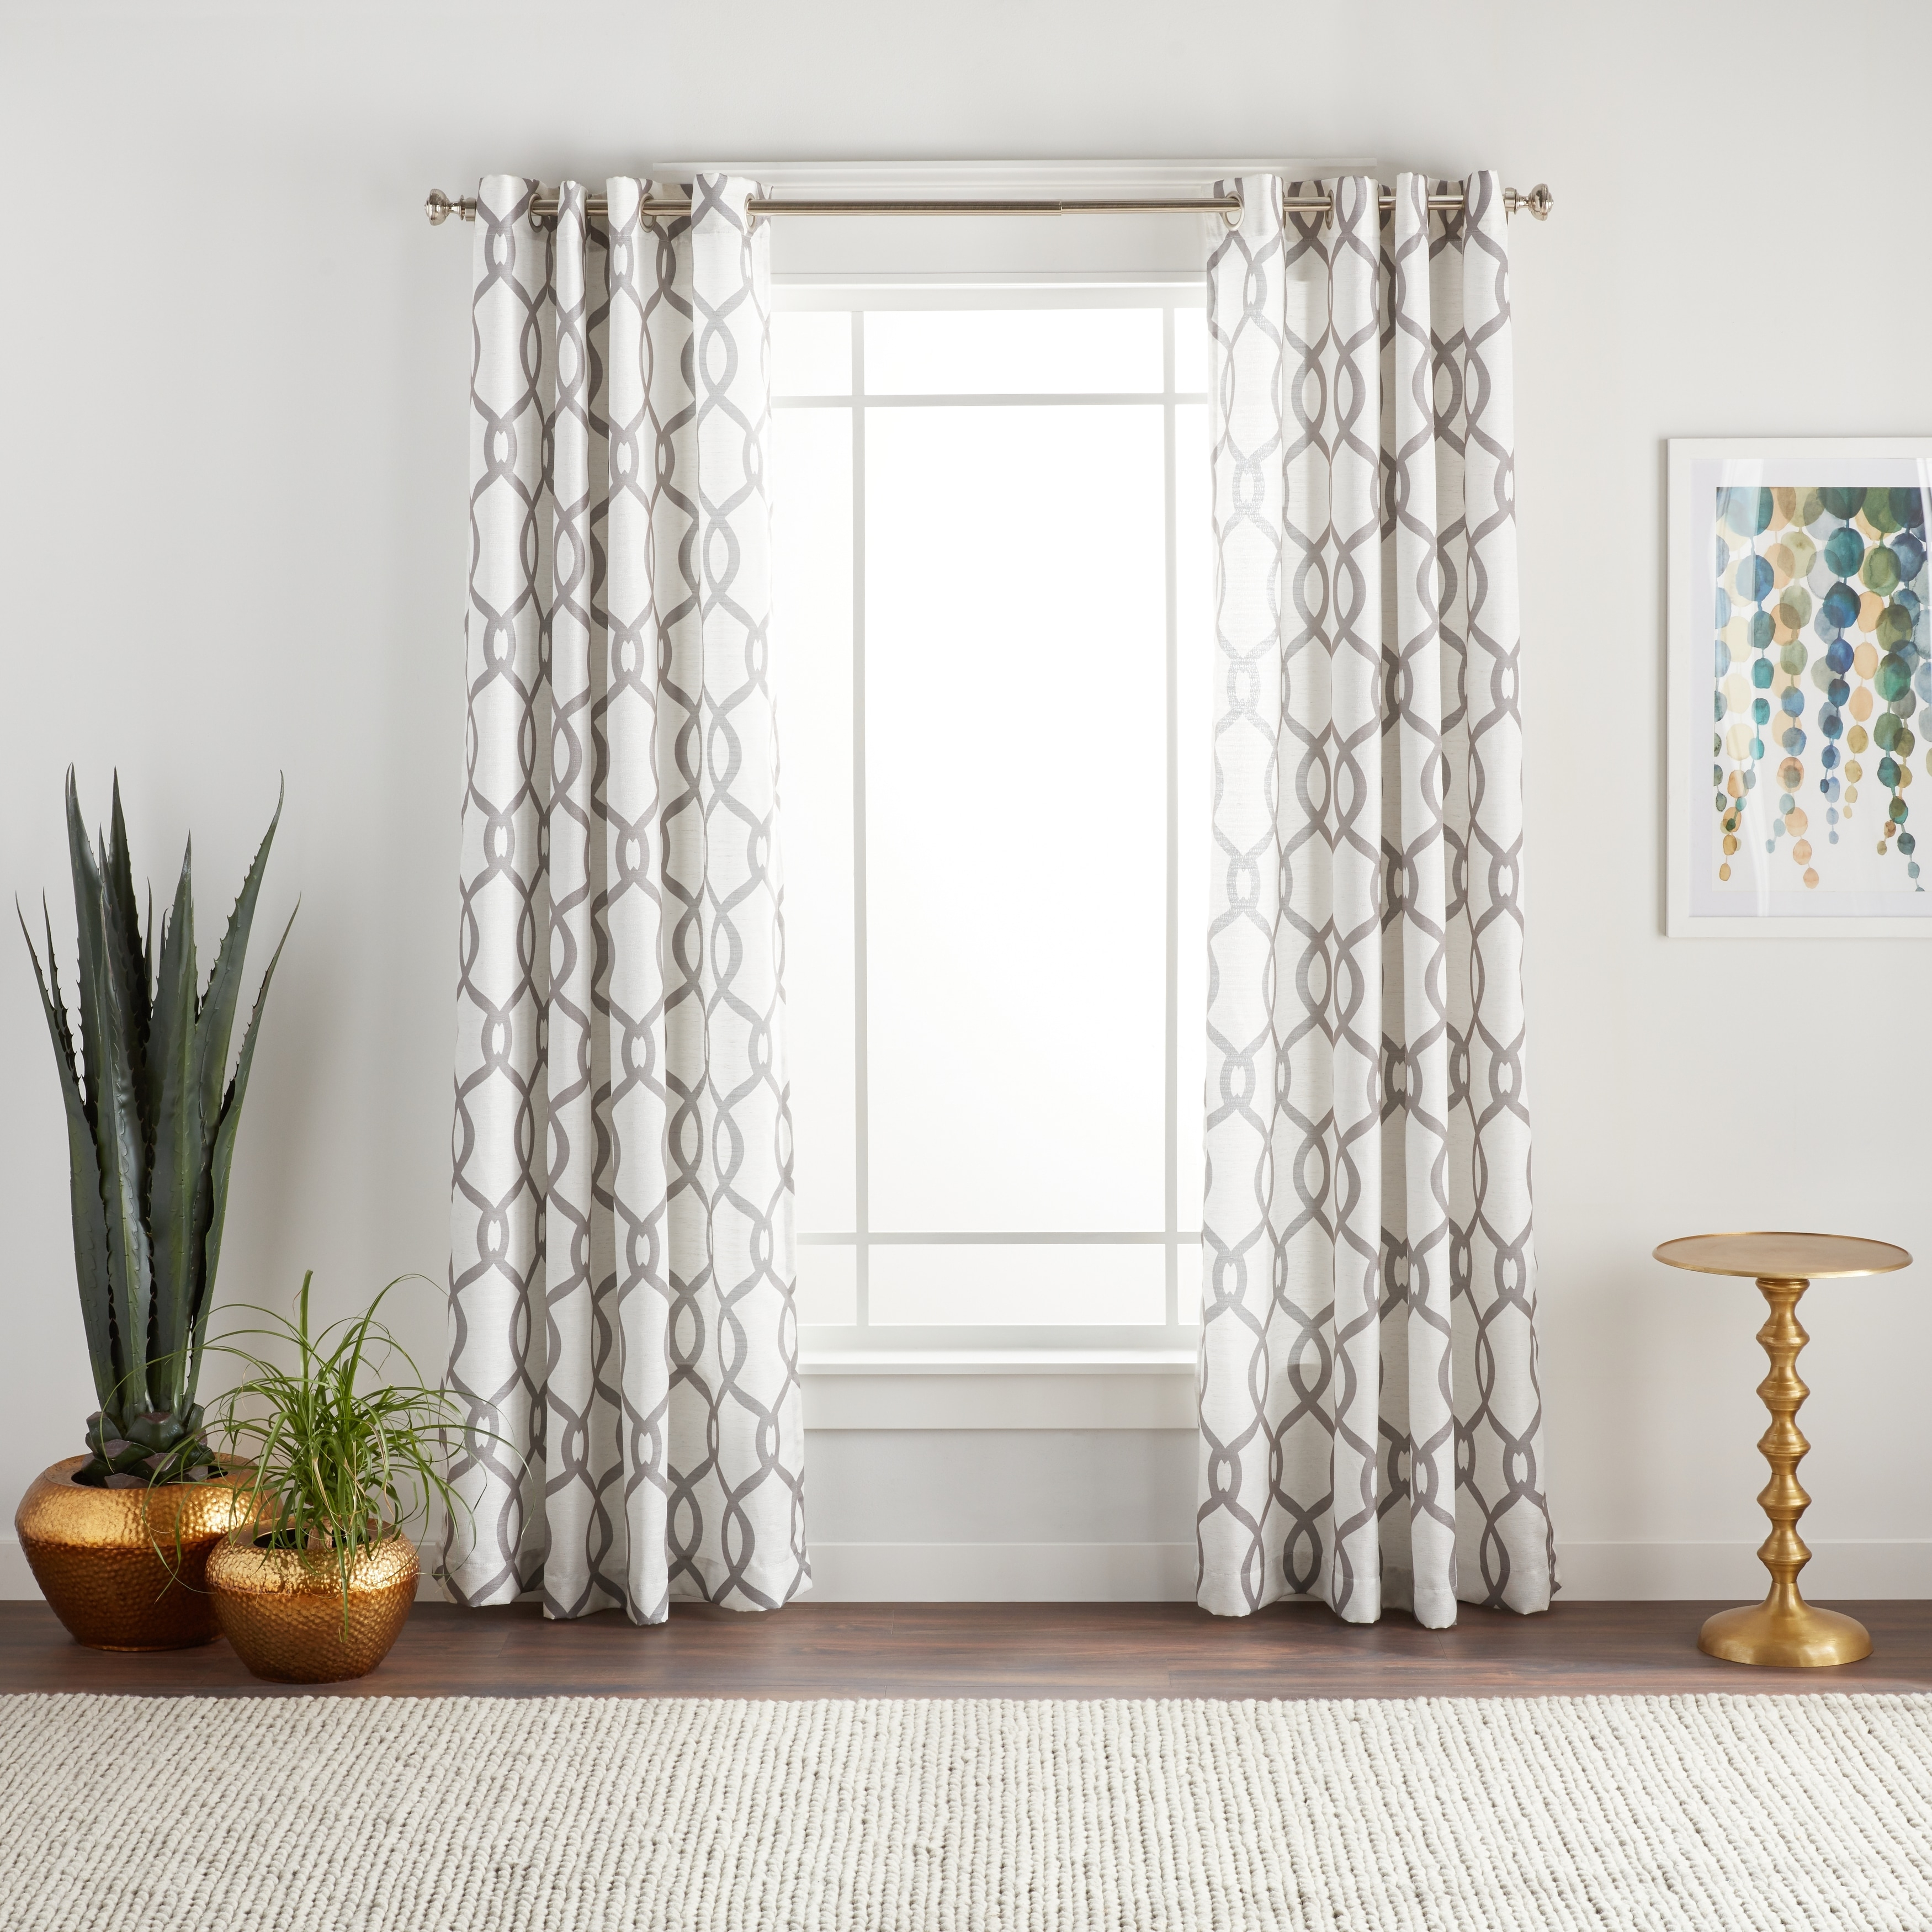 Ati Home Kochi Linen Blend Window Curtain Panel Pair With With Regard To Kochi Linen Blend Window Grommet Top Curtain Panel Pairs (View 10 of 20)